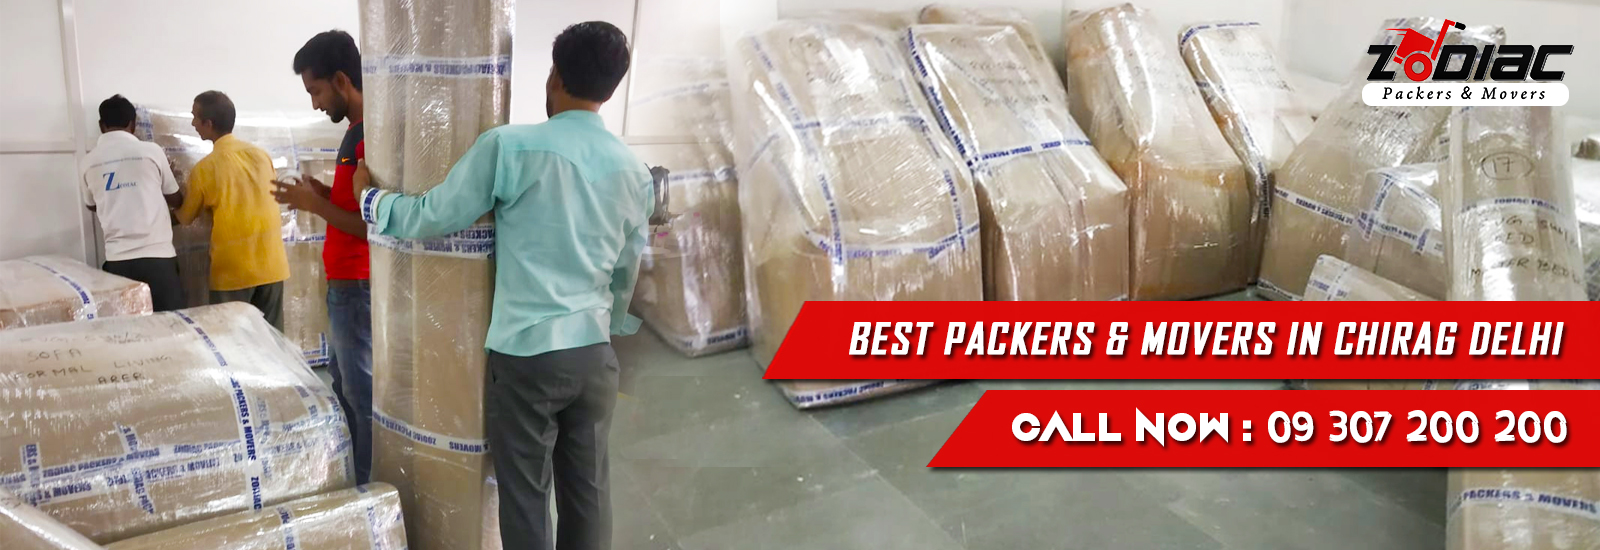 Packers and Movers in Chirag Delhi